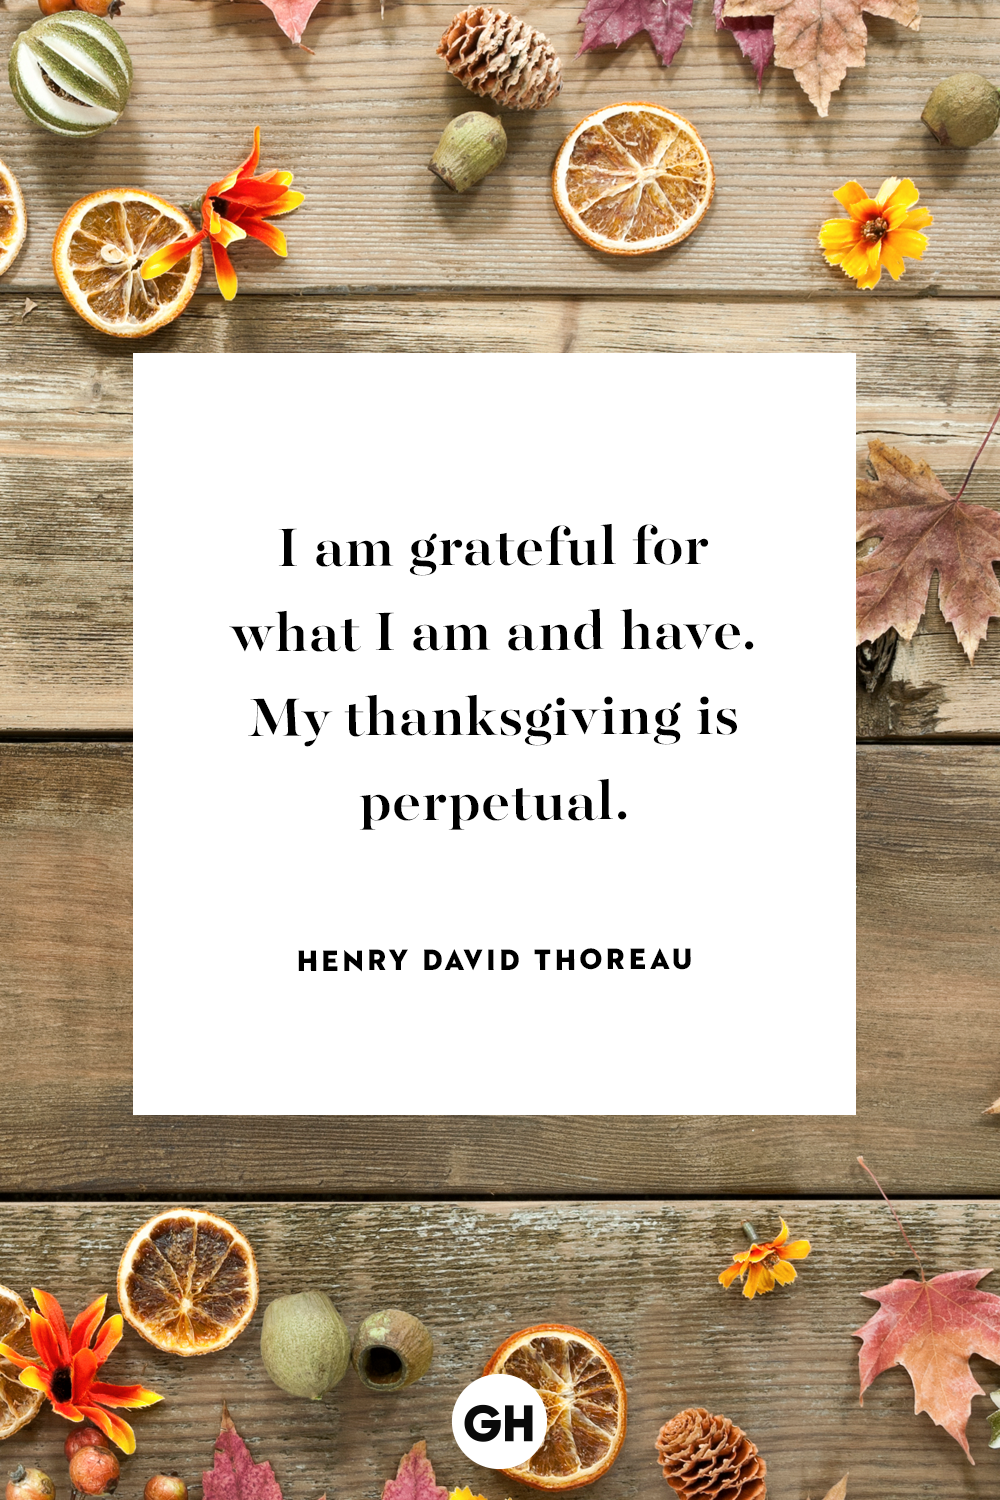 12 Best Thanksgiving Quotes - Inspirational and Funny Quotes About